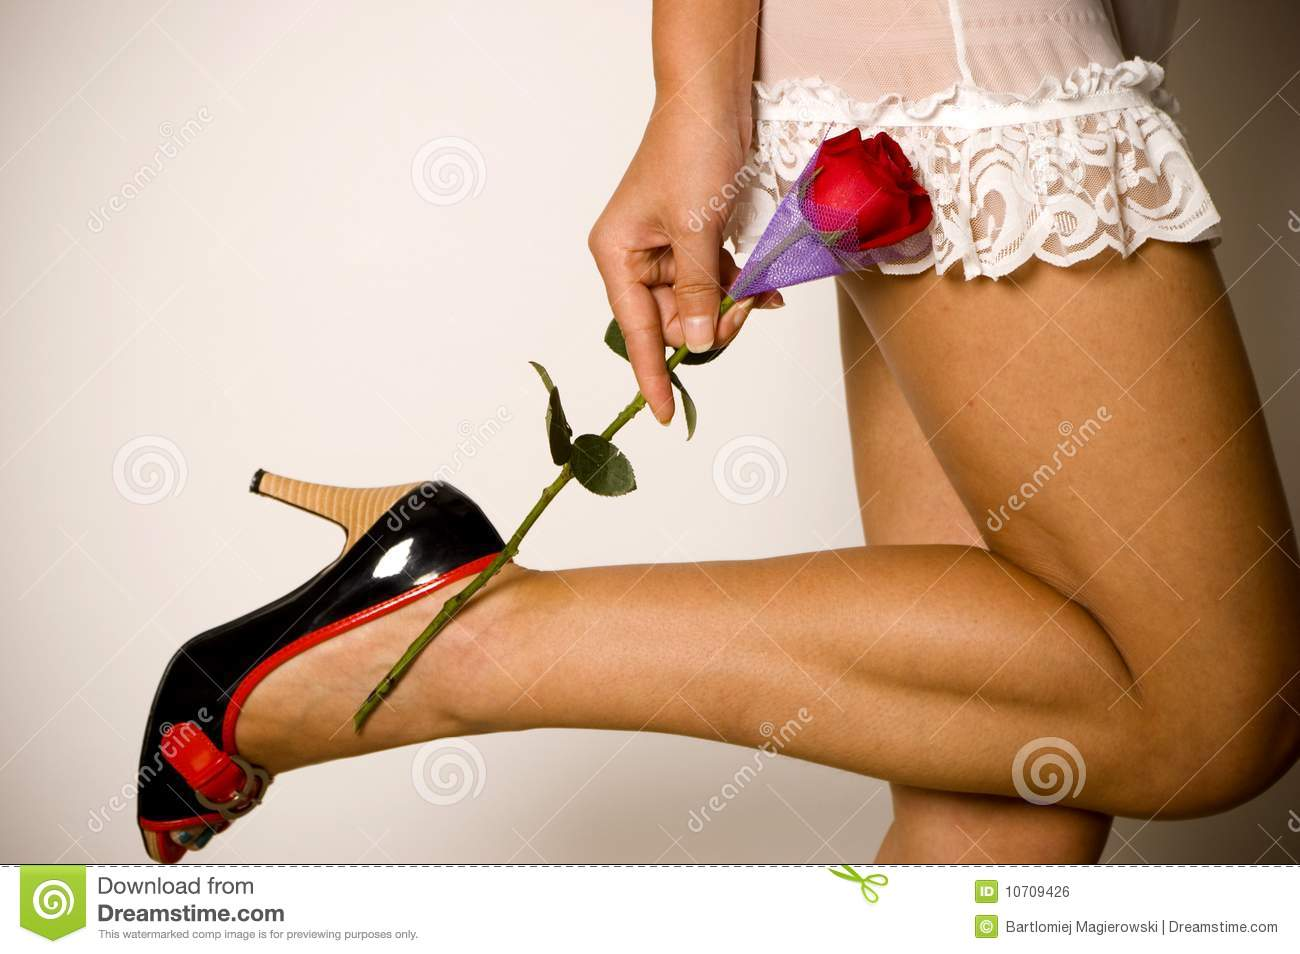 Постер Girl in sexy lingerie holding rose, плакат.